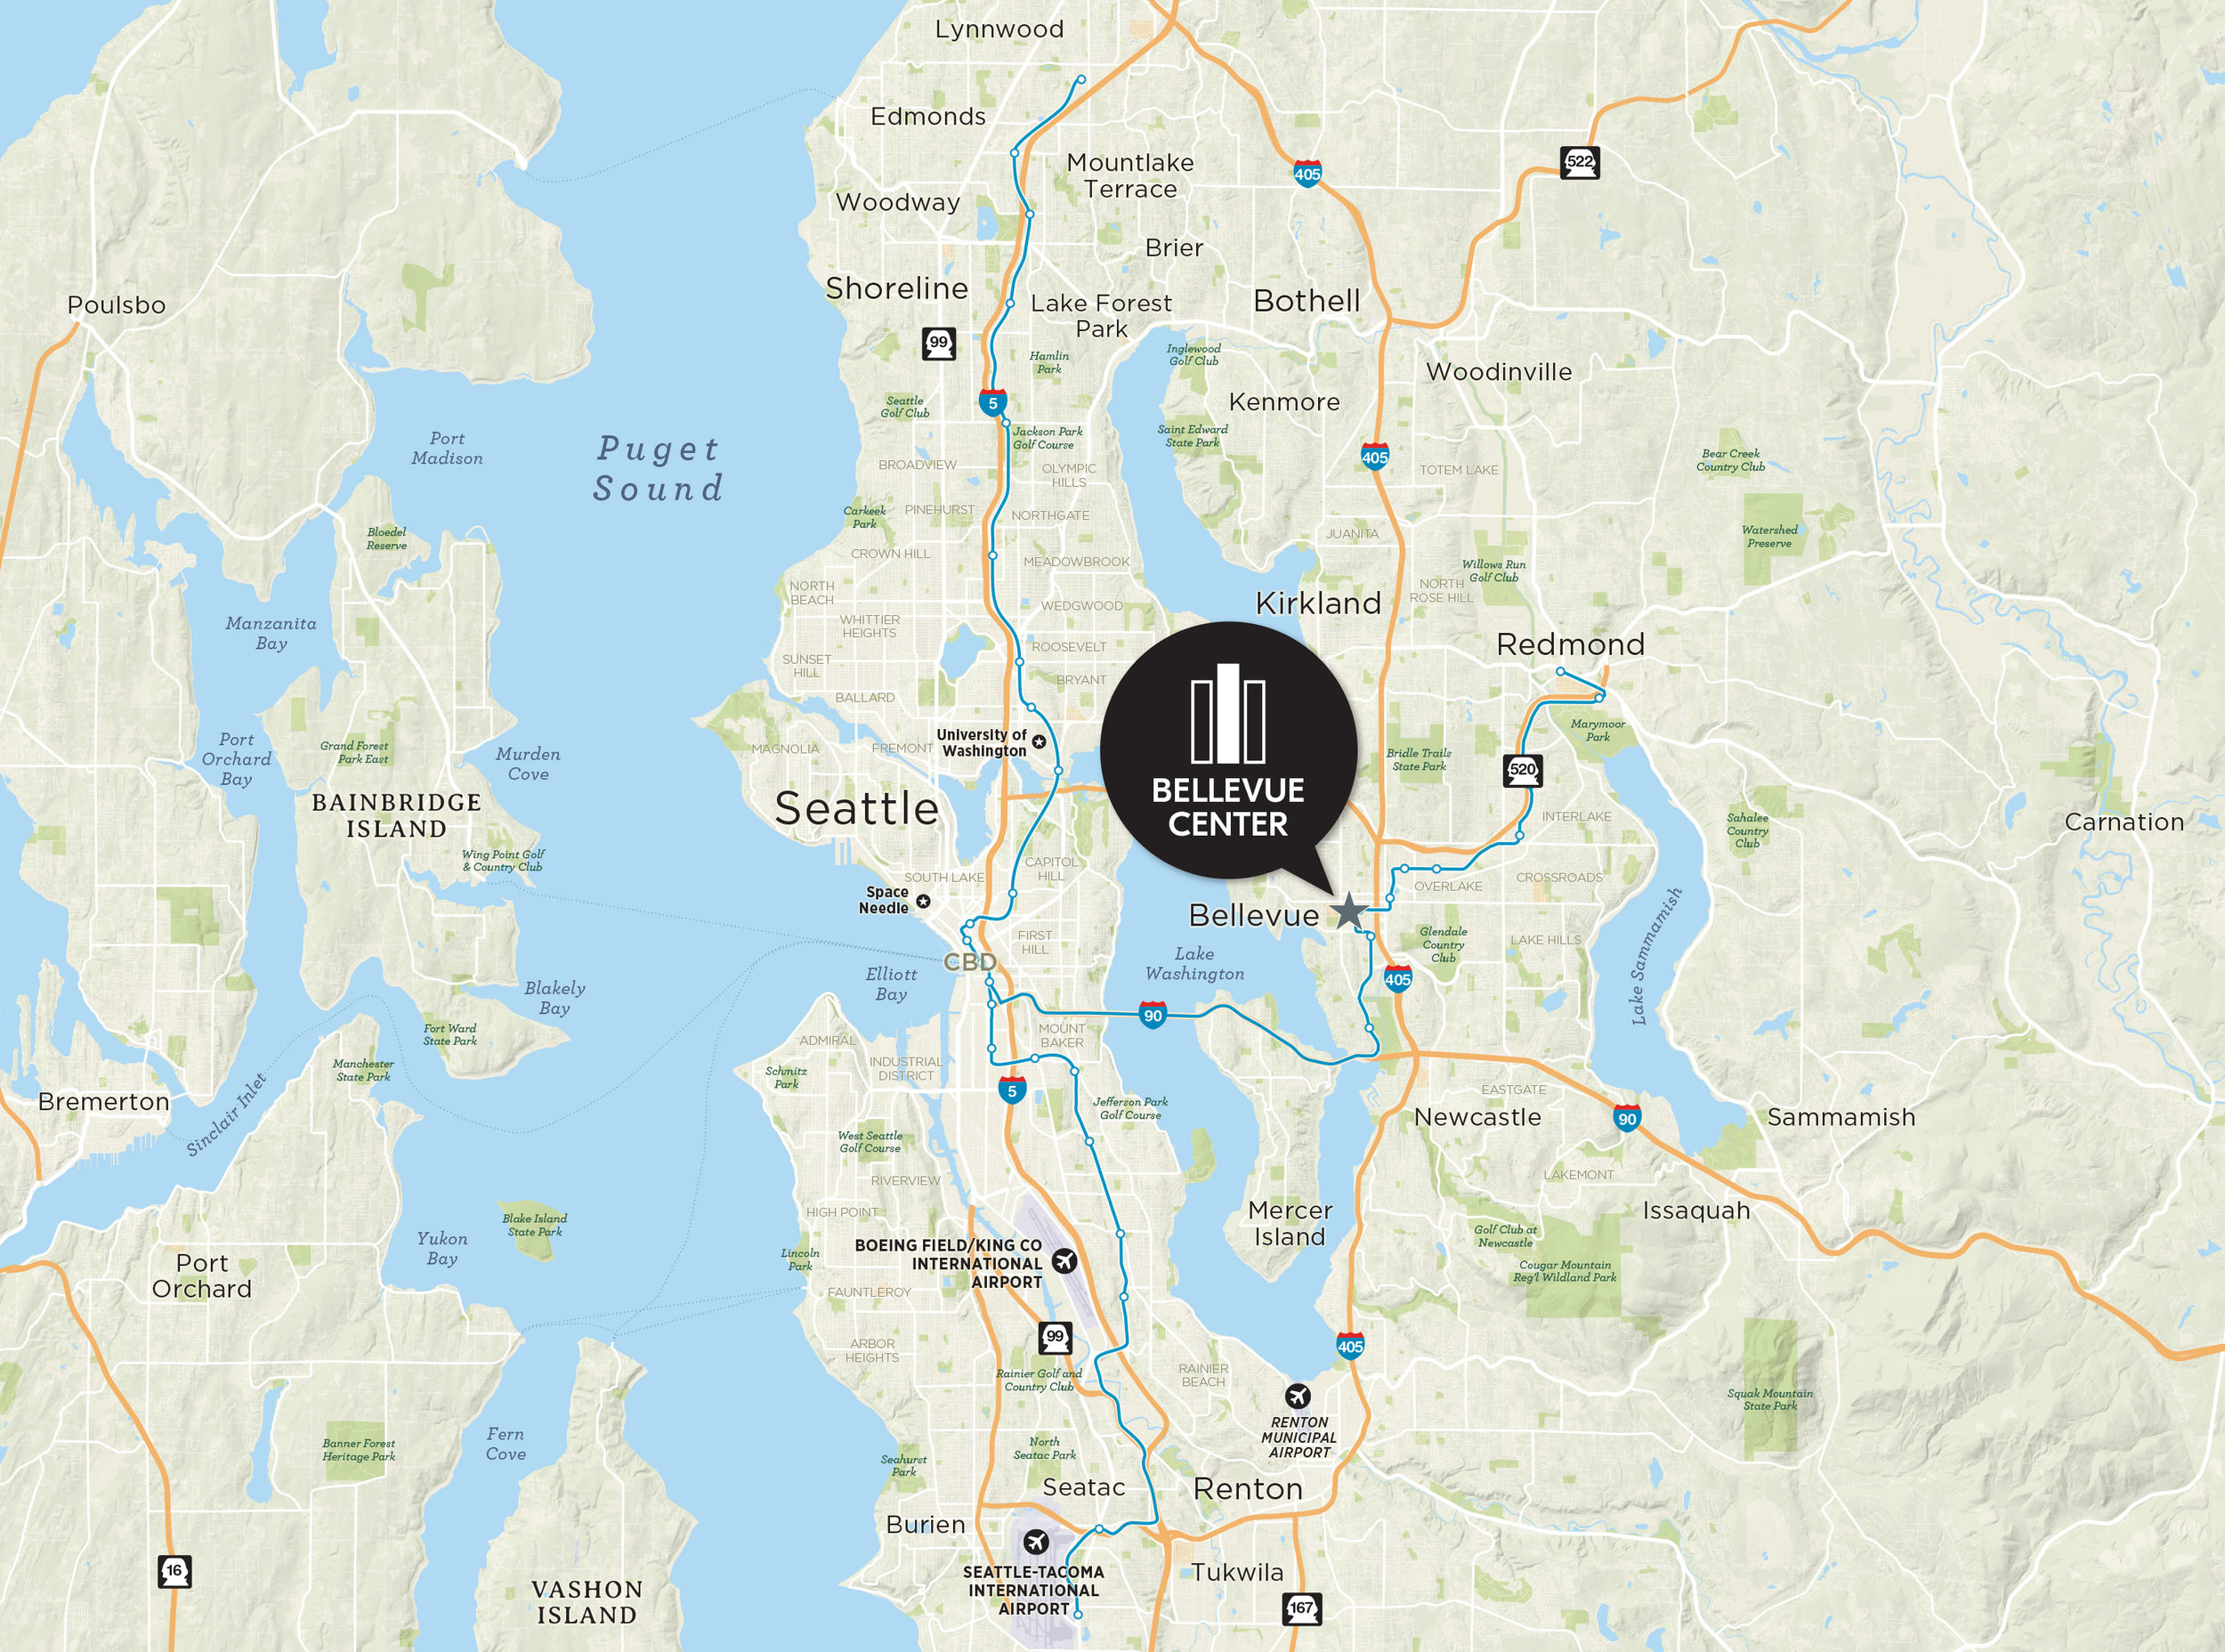 seattle washington regional map.jpg